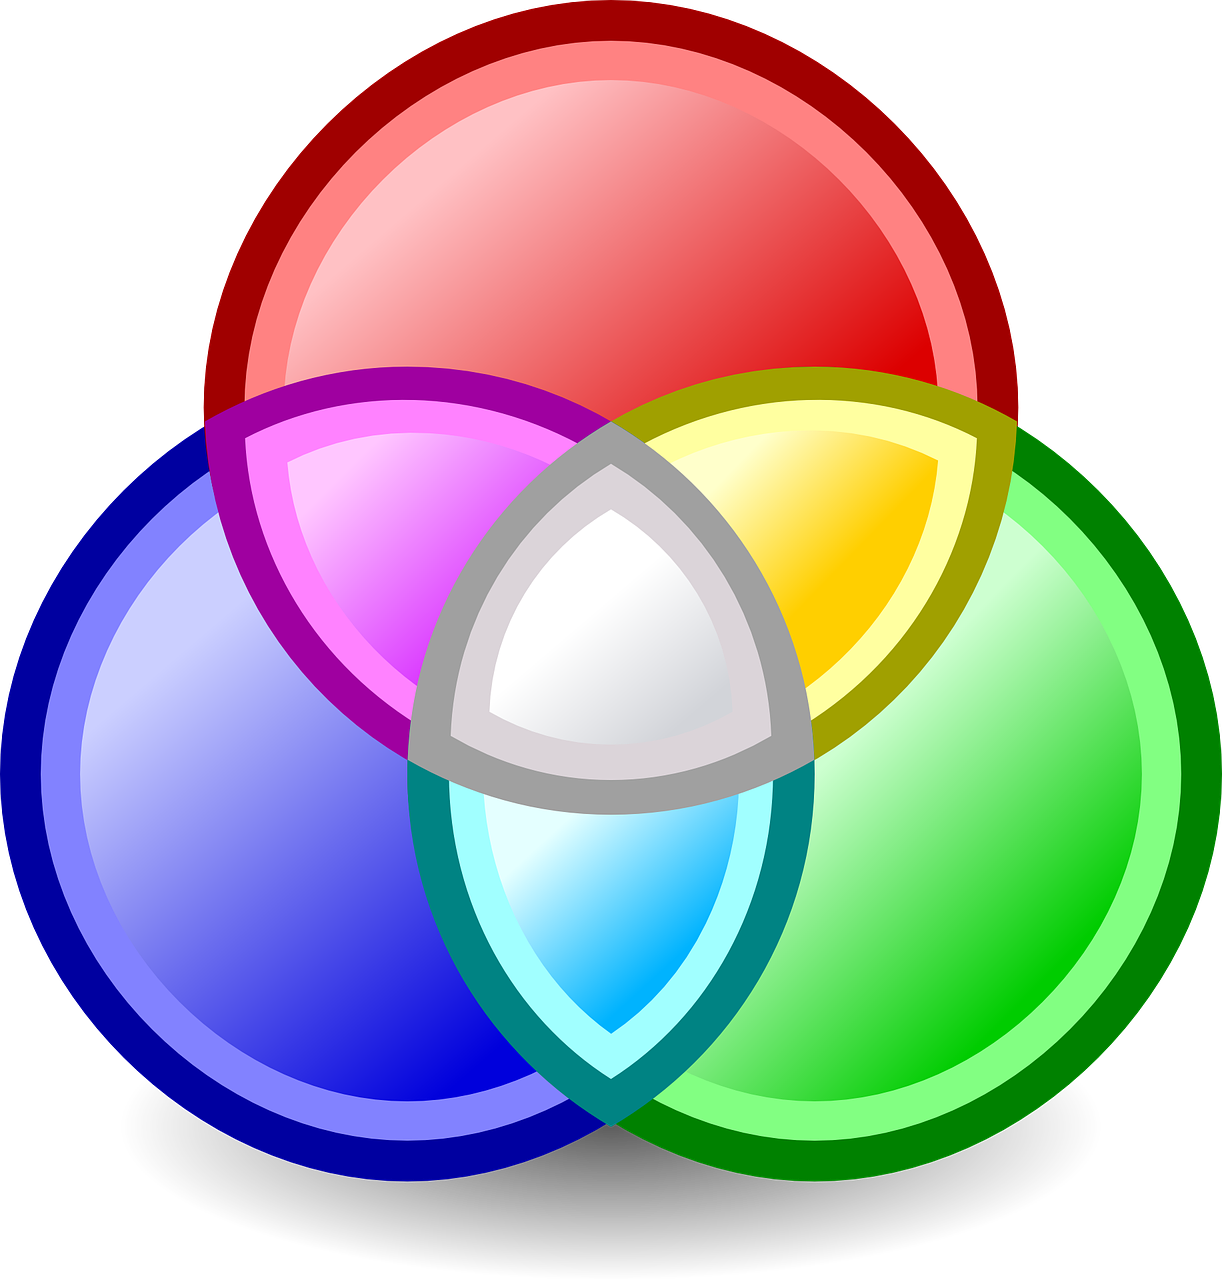 A Venn Diagram of three primary colors, combining to create three secondary colors CC0 Public Domain via Pixabay